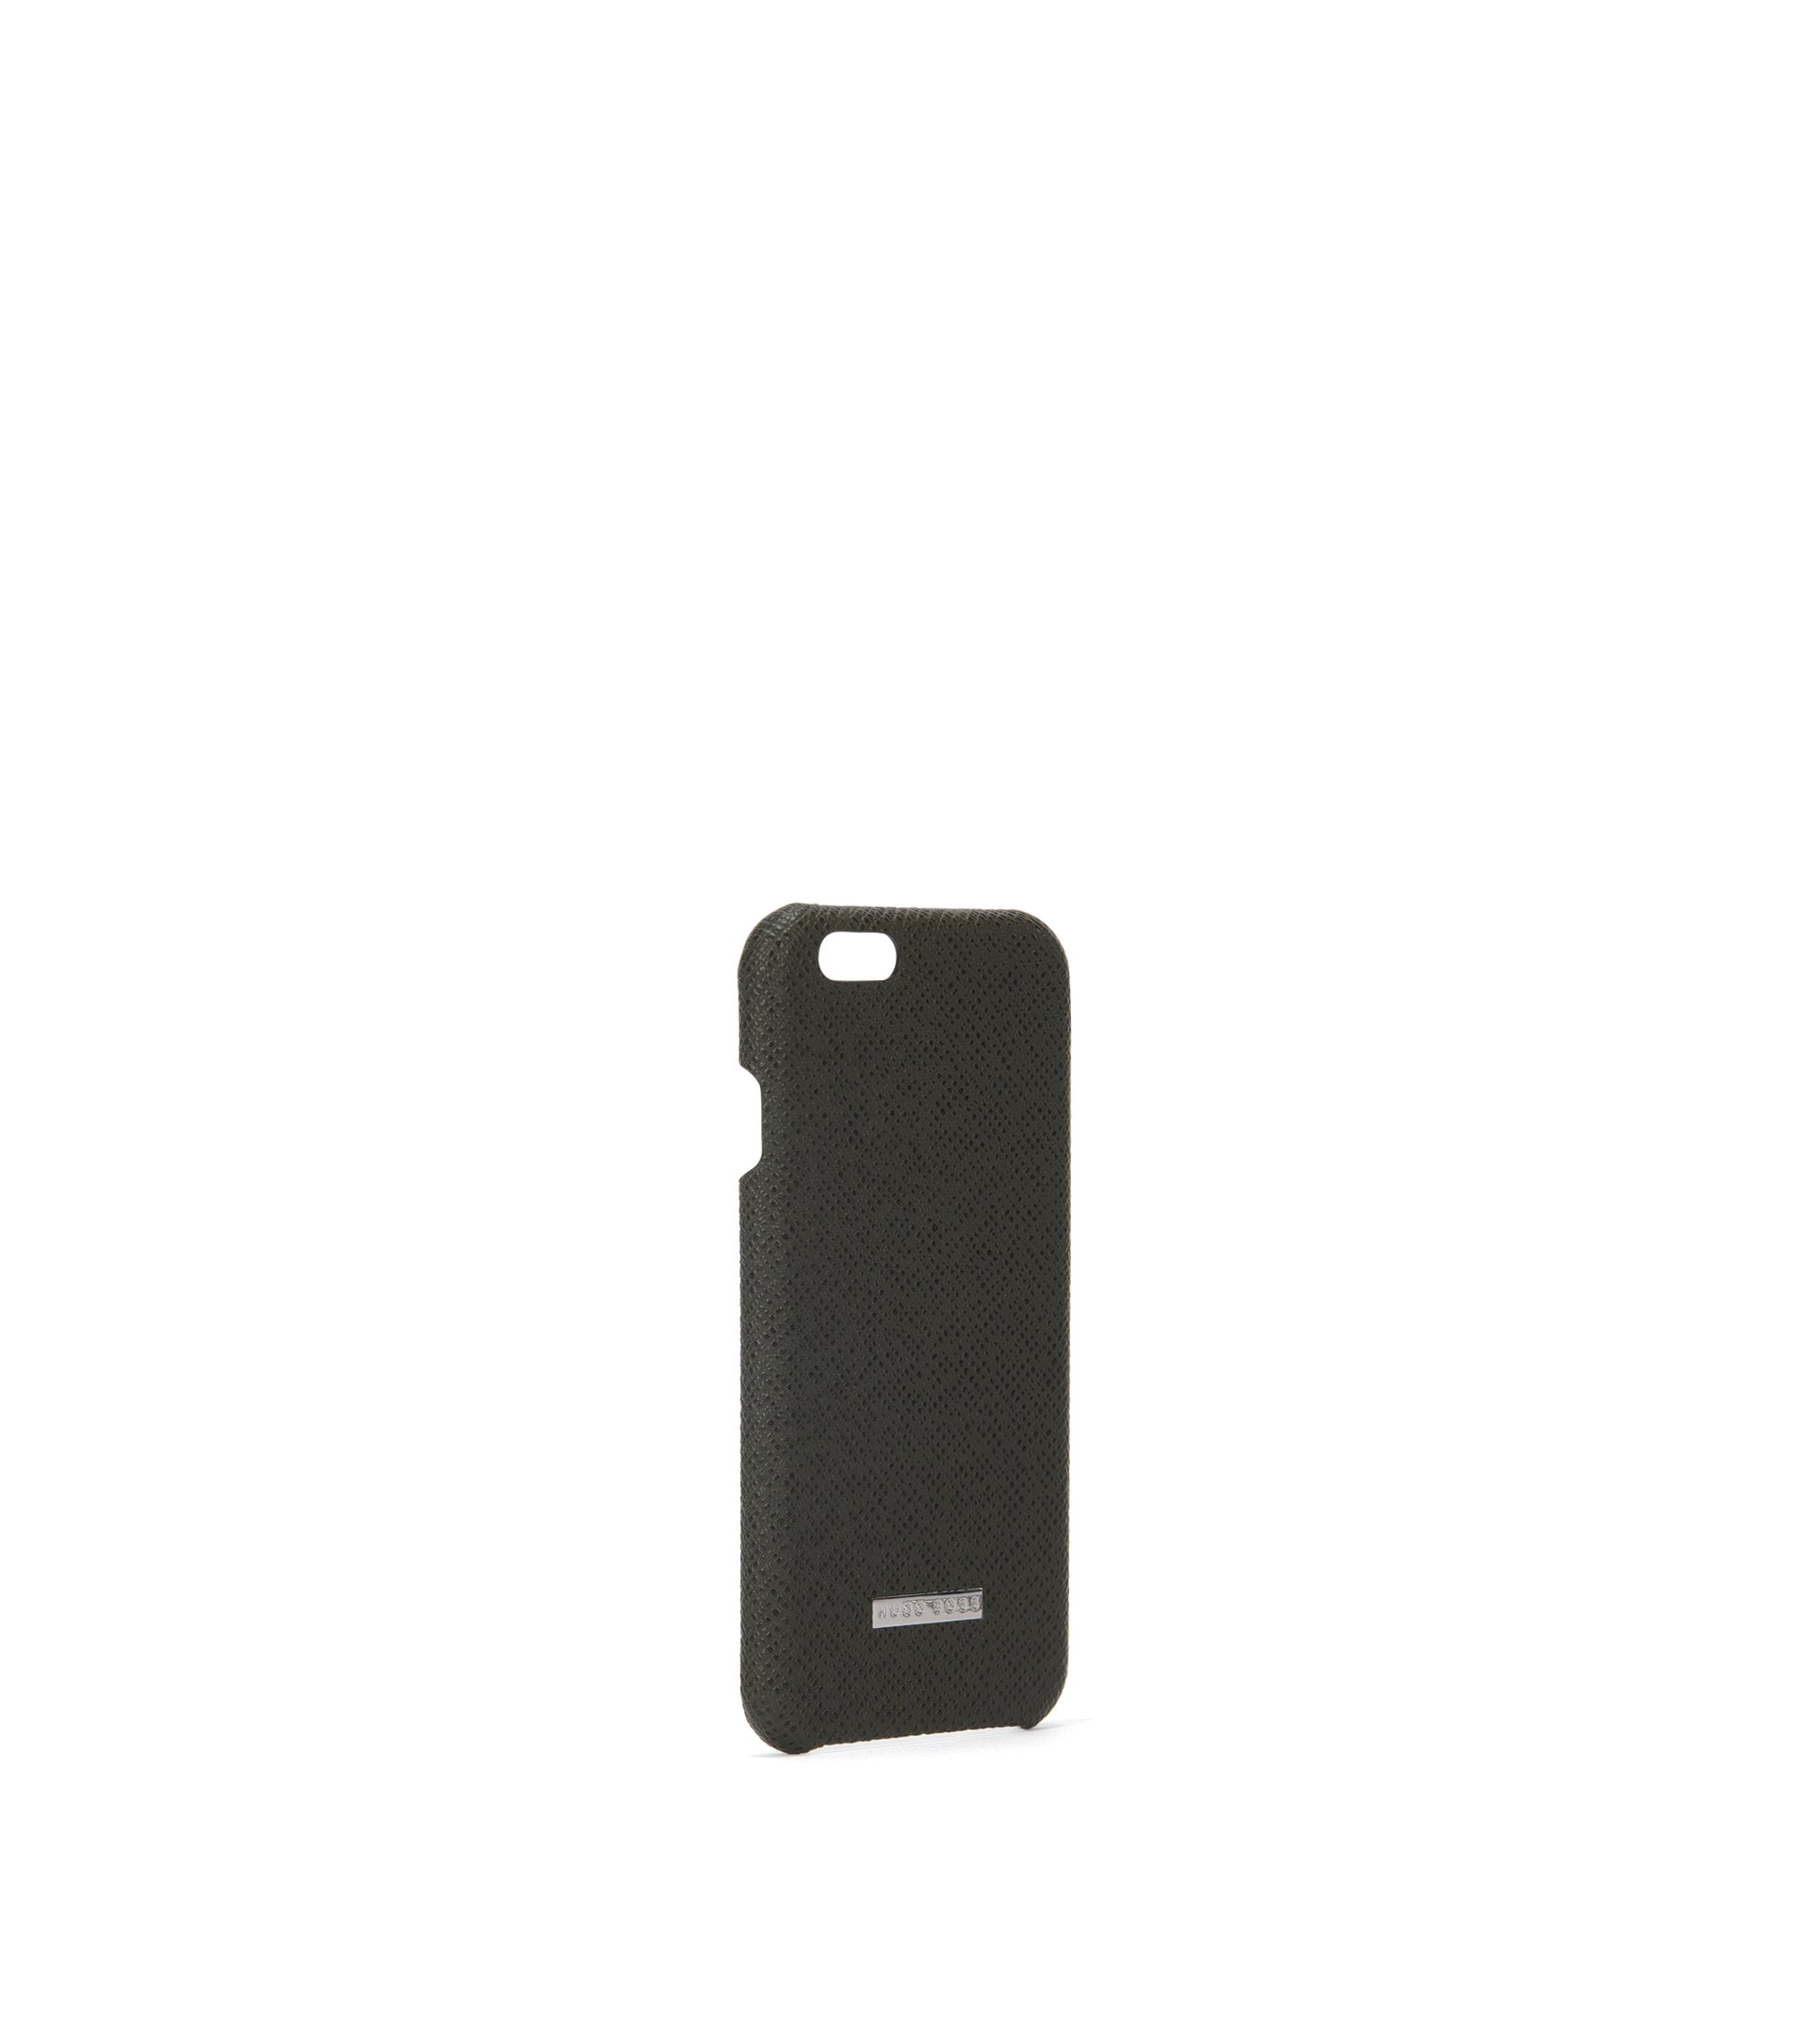 Signature Collection smartphone cover in palmellato leather, Dark Green